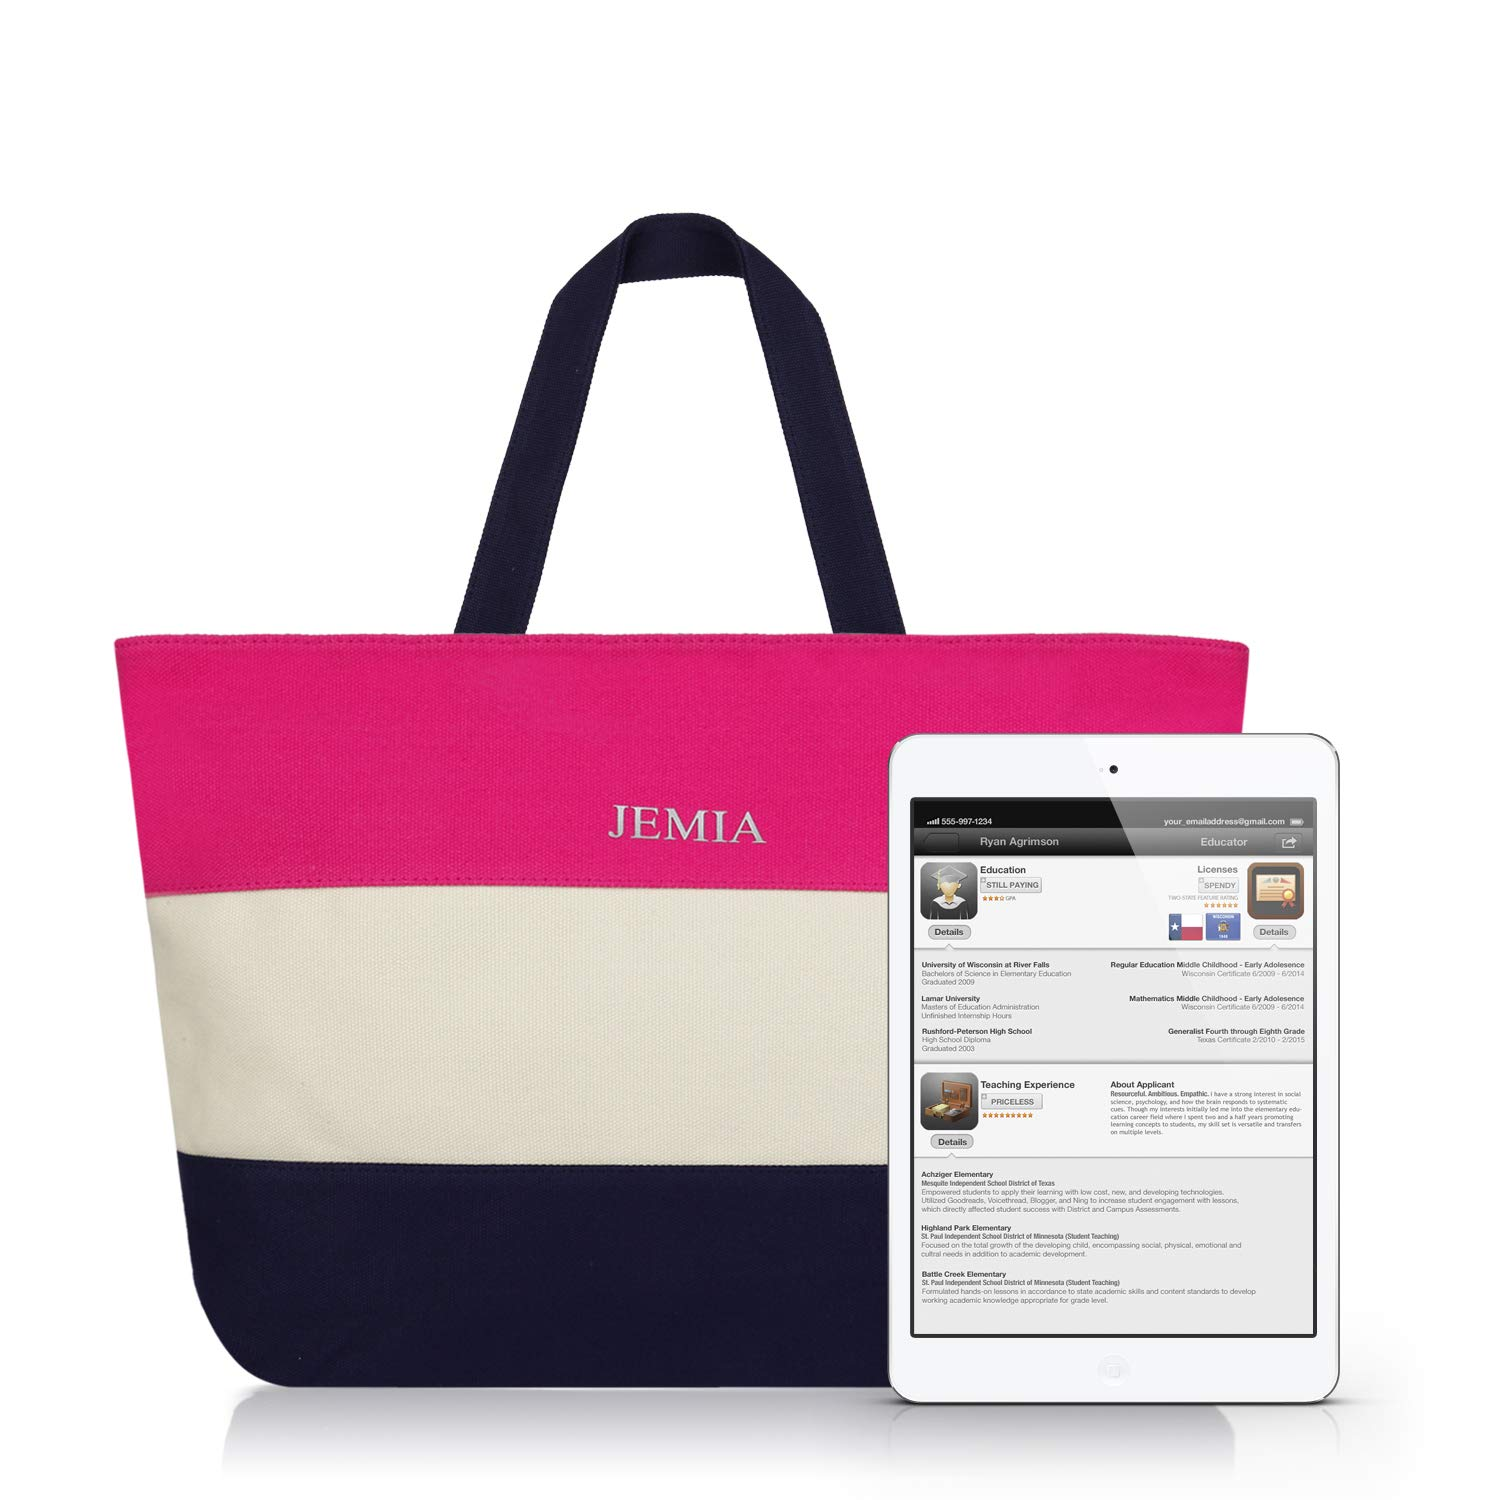 58d3da6dcbe JEMIA - Canvas Zipper Tote Bag with Striped Color for Women